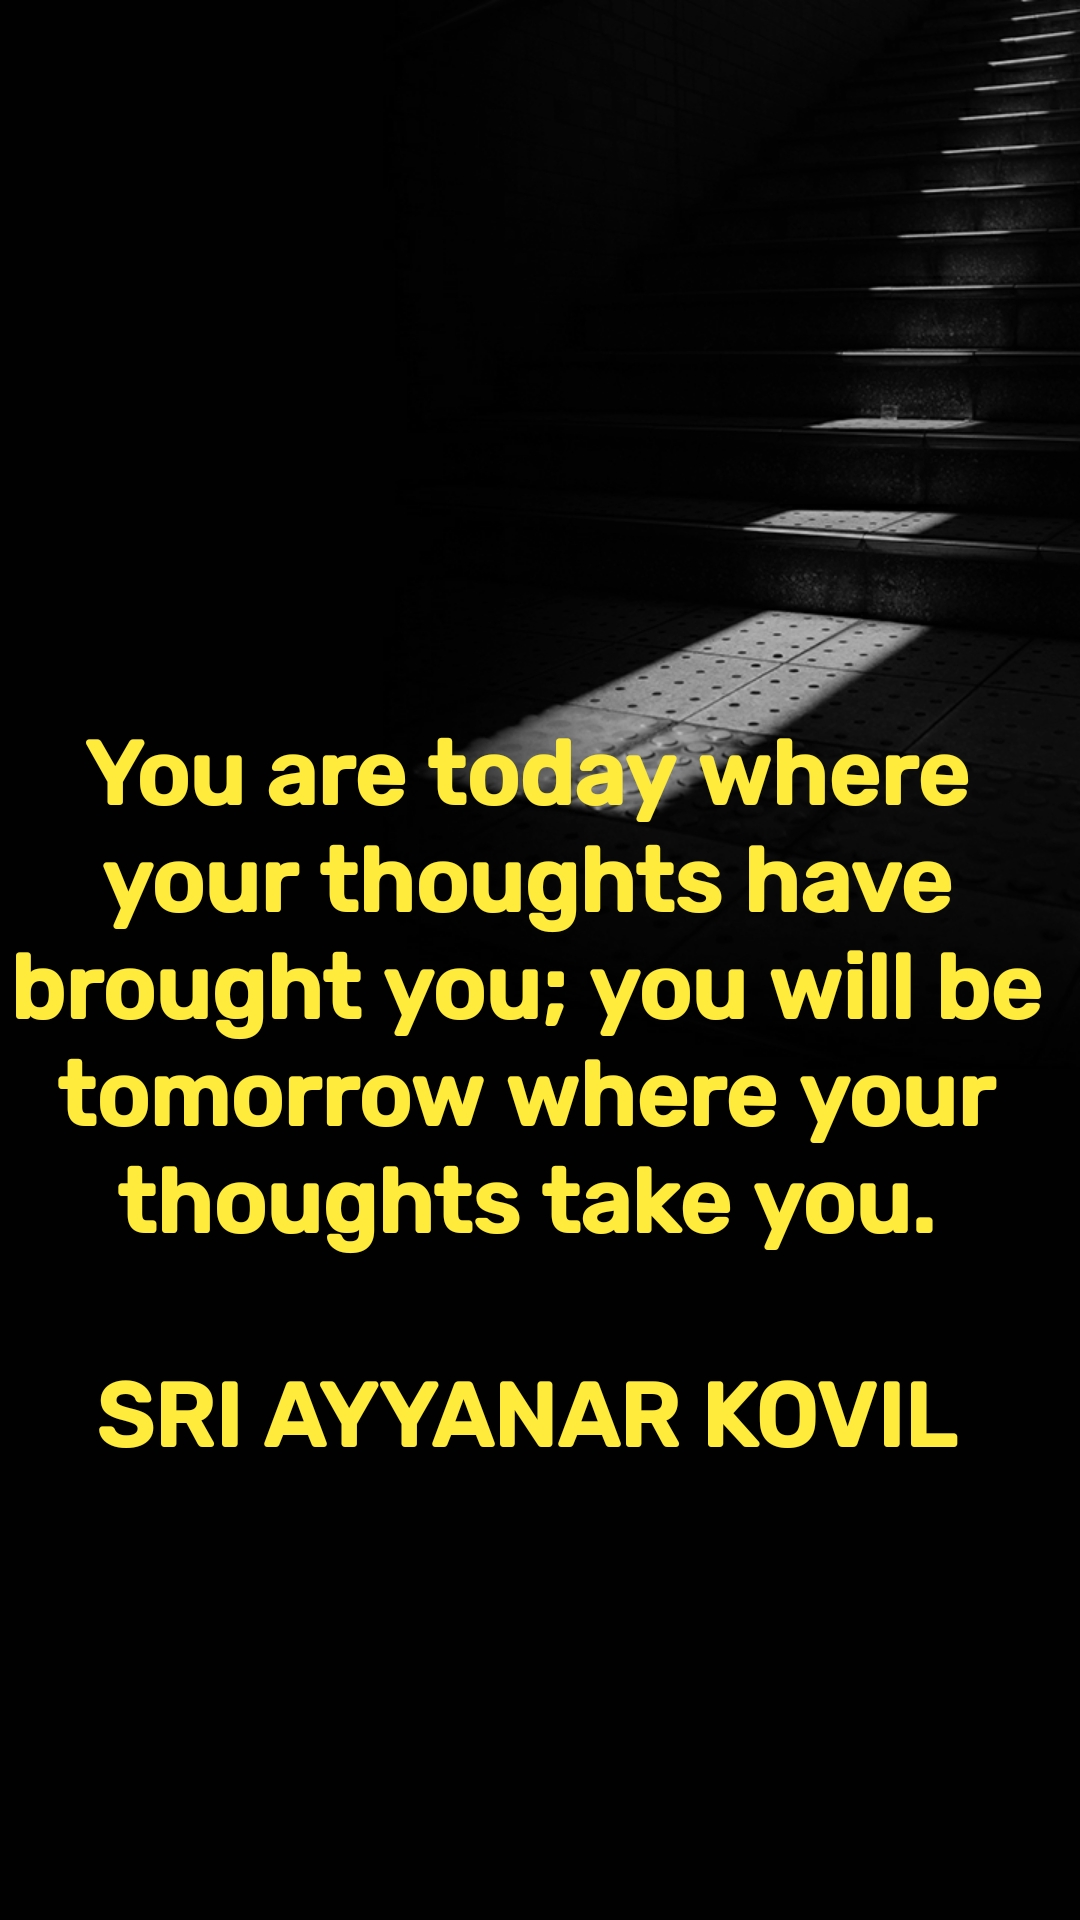 You are today where your thoughts have brought you; you will be tomorrow where your thoughts take you.  SRI AYYANAR KOVIL